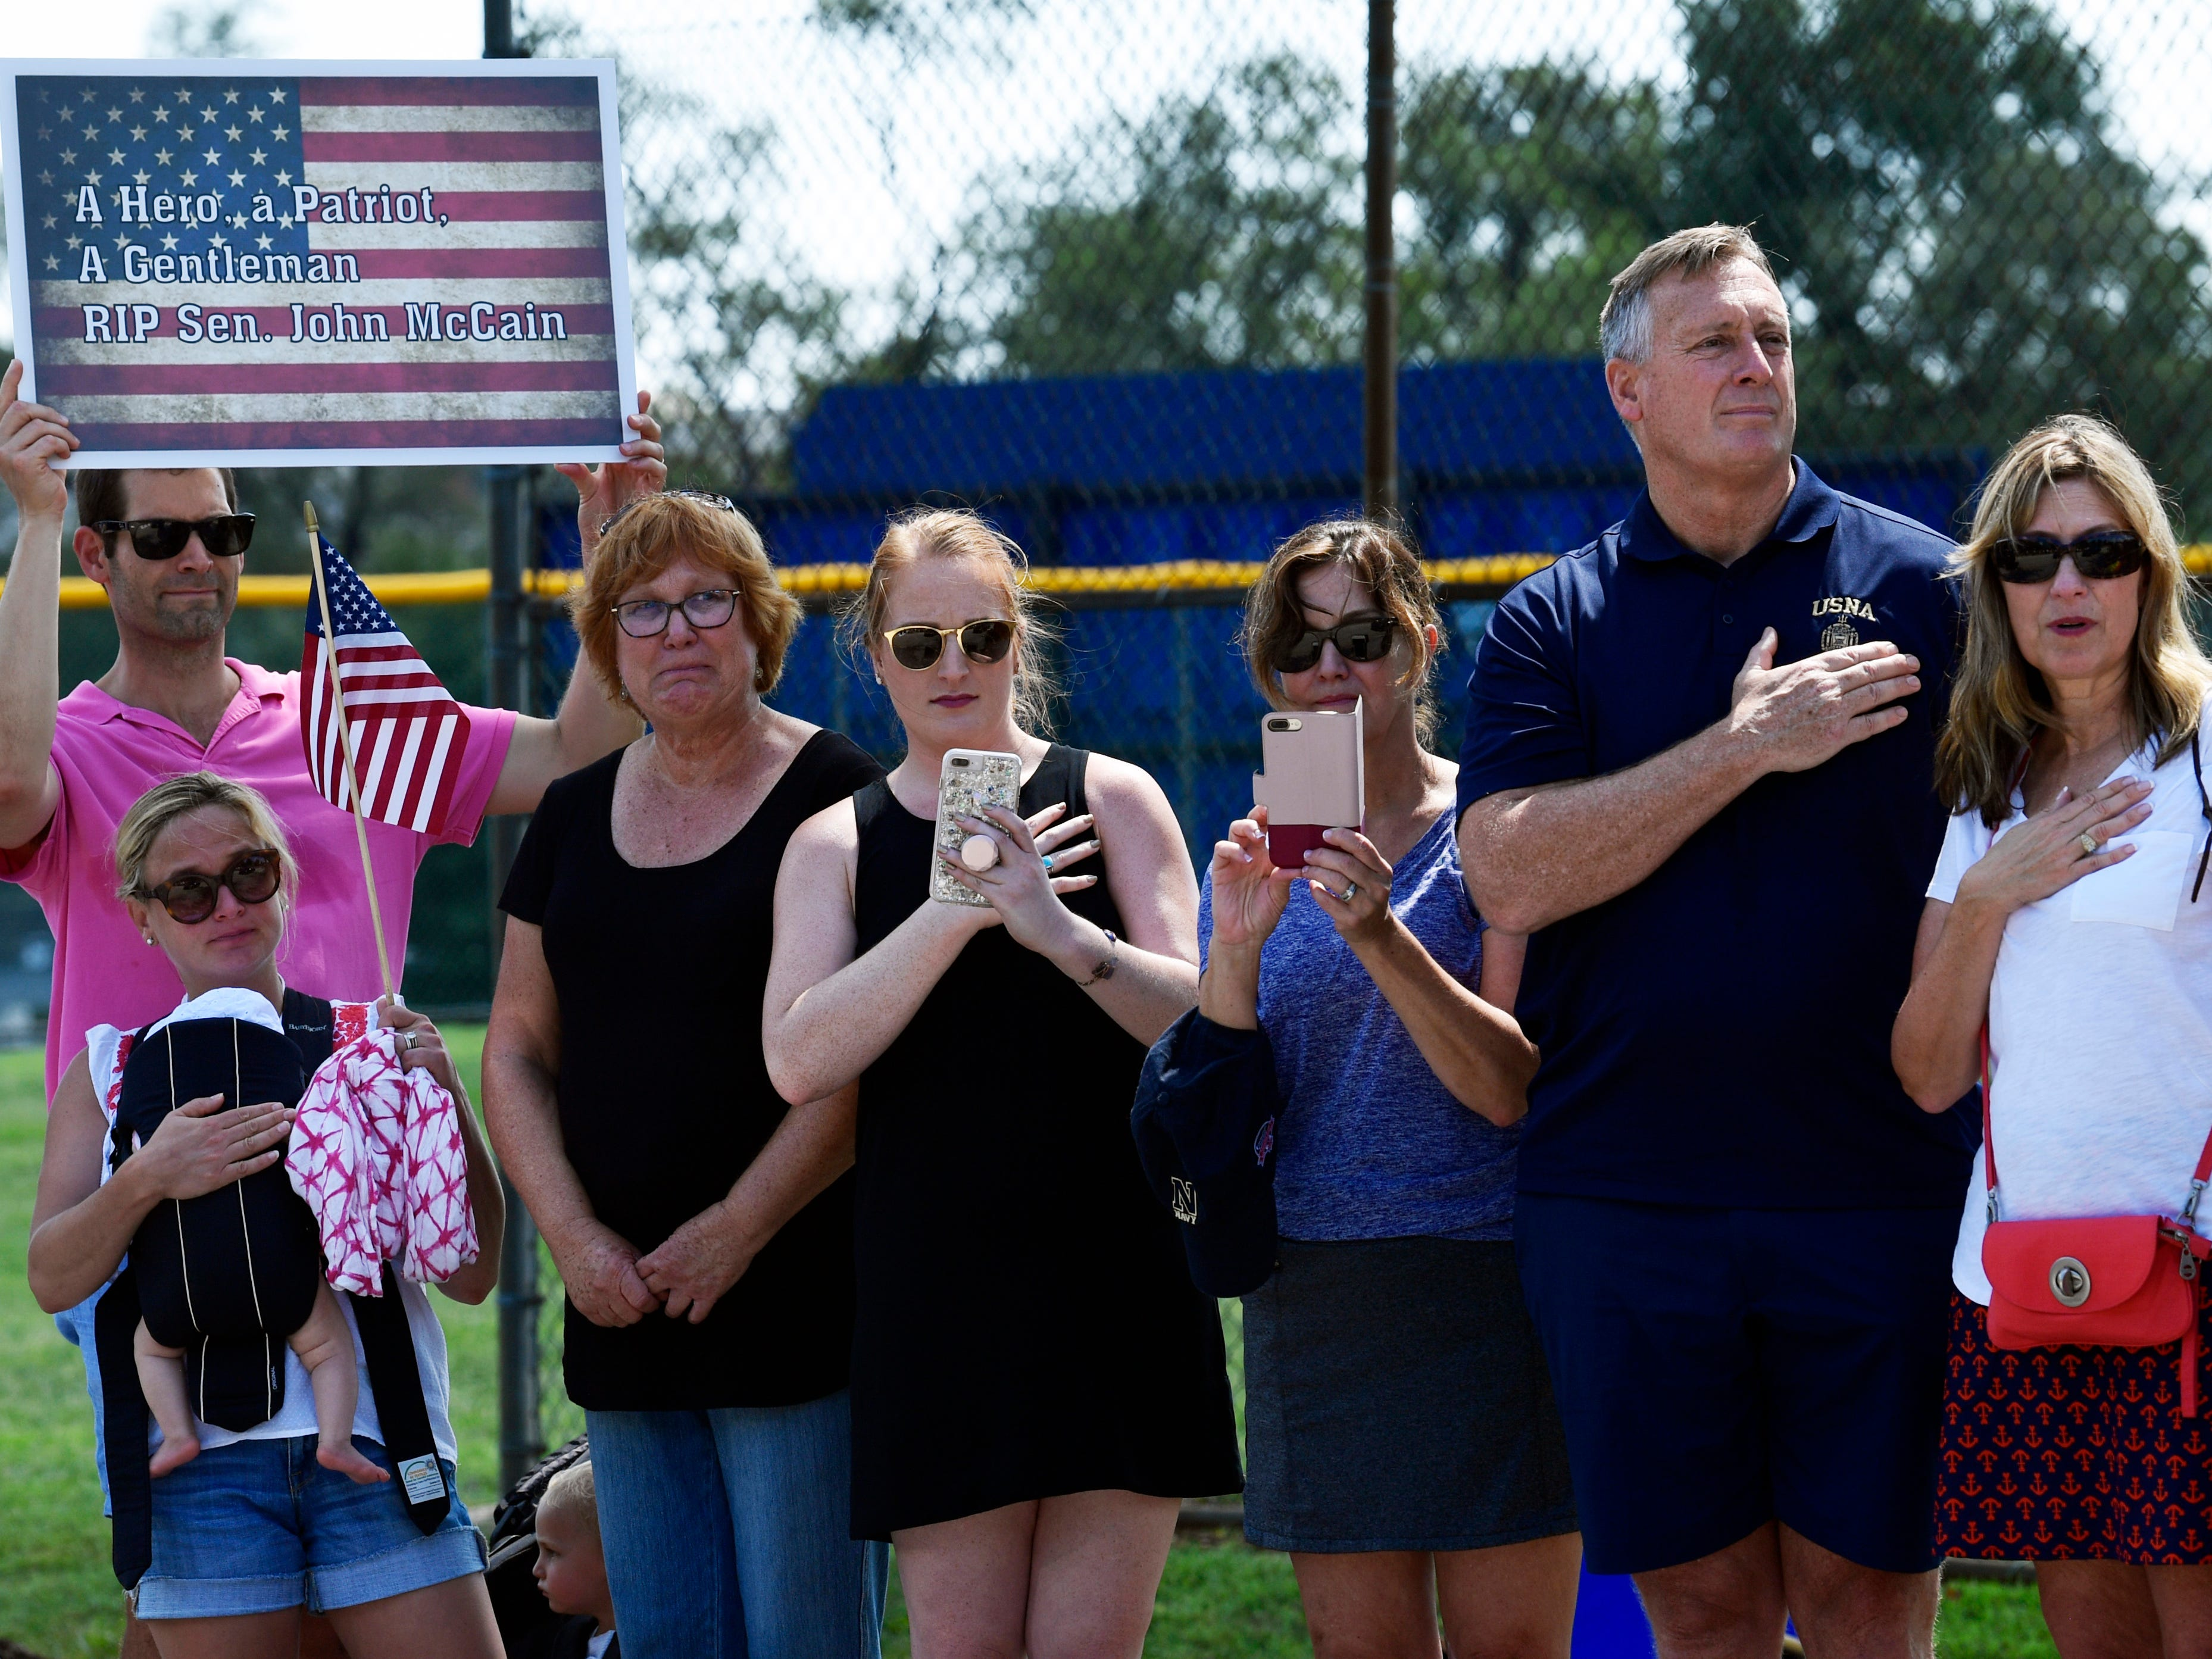 People watch as the funeral procession for Sen. John McCain, R-Ariz., arrives at the United States Naval Academy in Annapolis, Md., Sunday, Sept. 2, 2018, for his funeral service and burial. McCain died Aug. 25 from brain cancer at age 81. (AP Photo/Susan Walsh) ORG XMIT: MDSW102